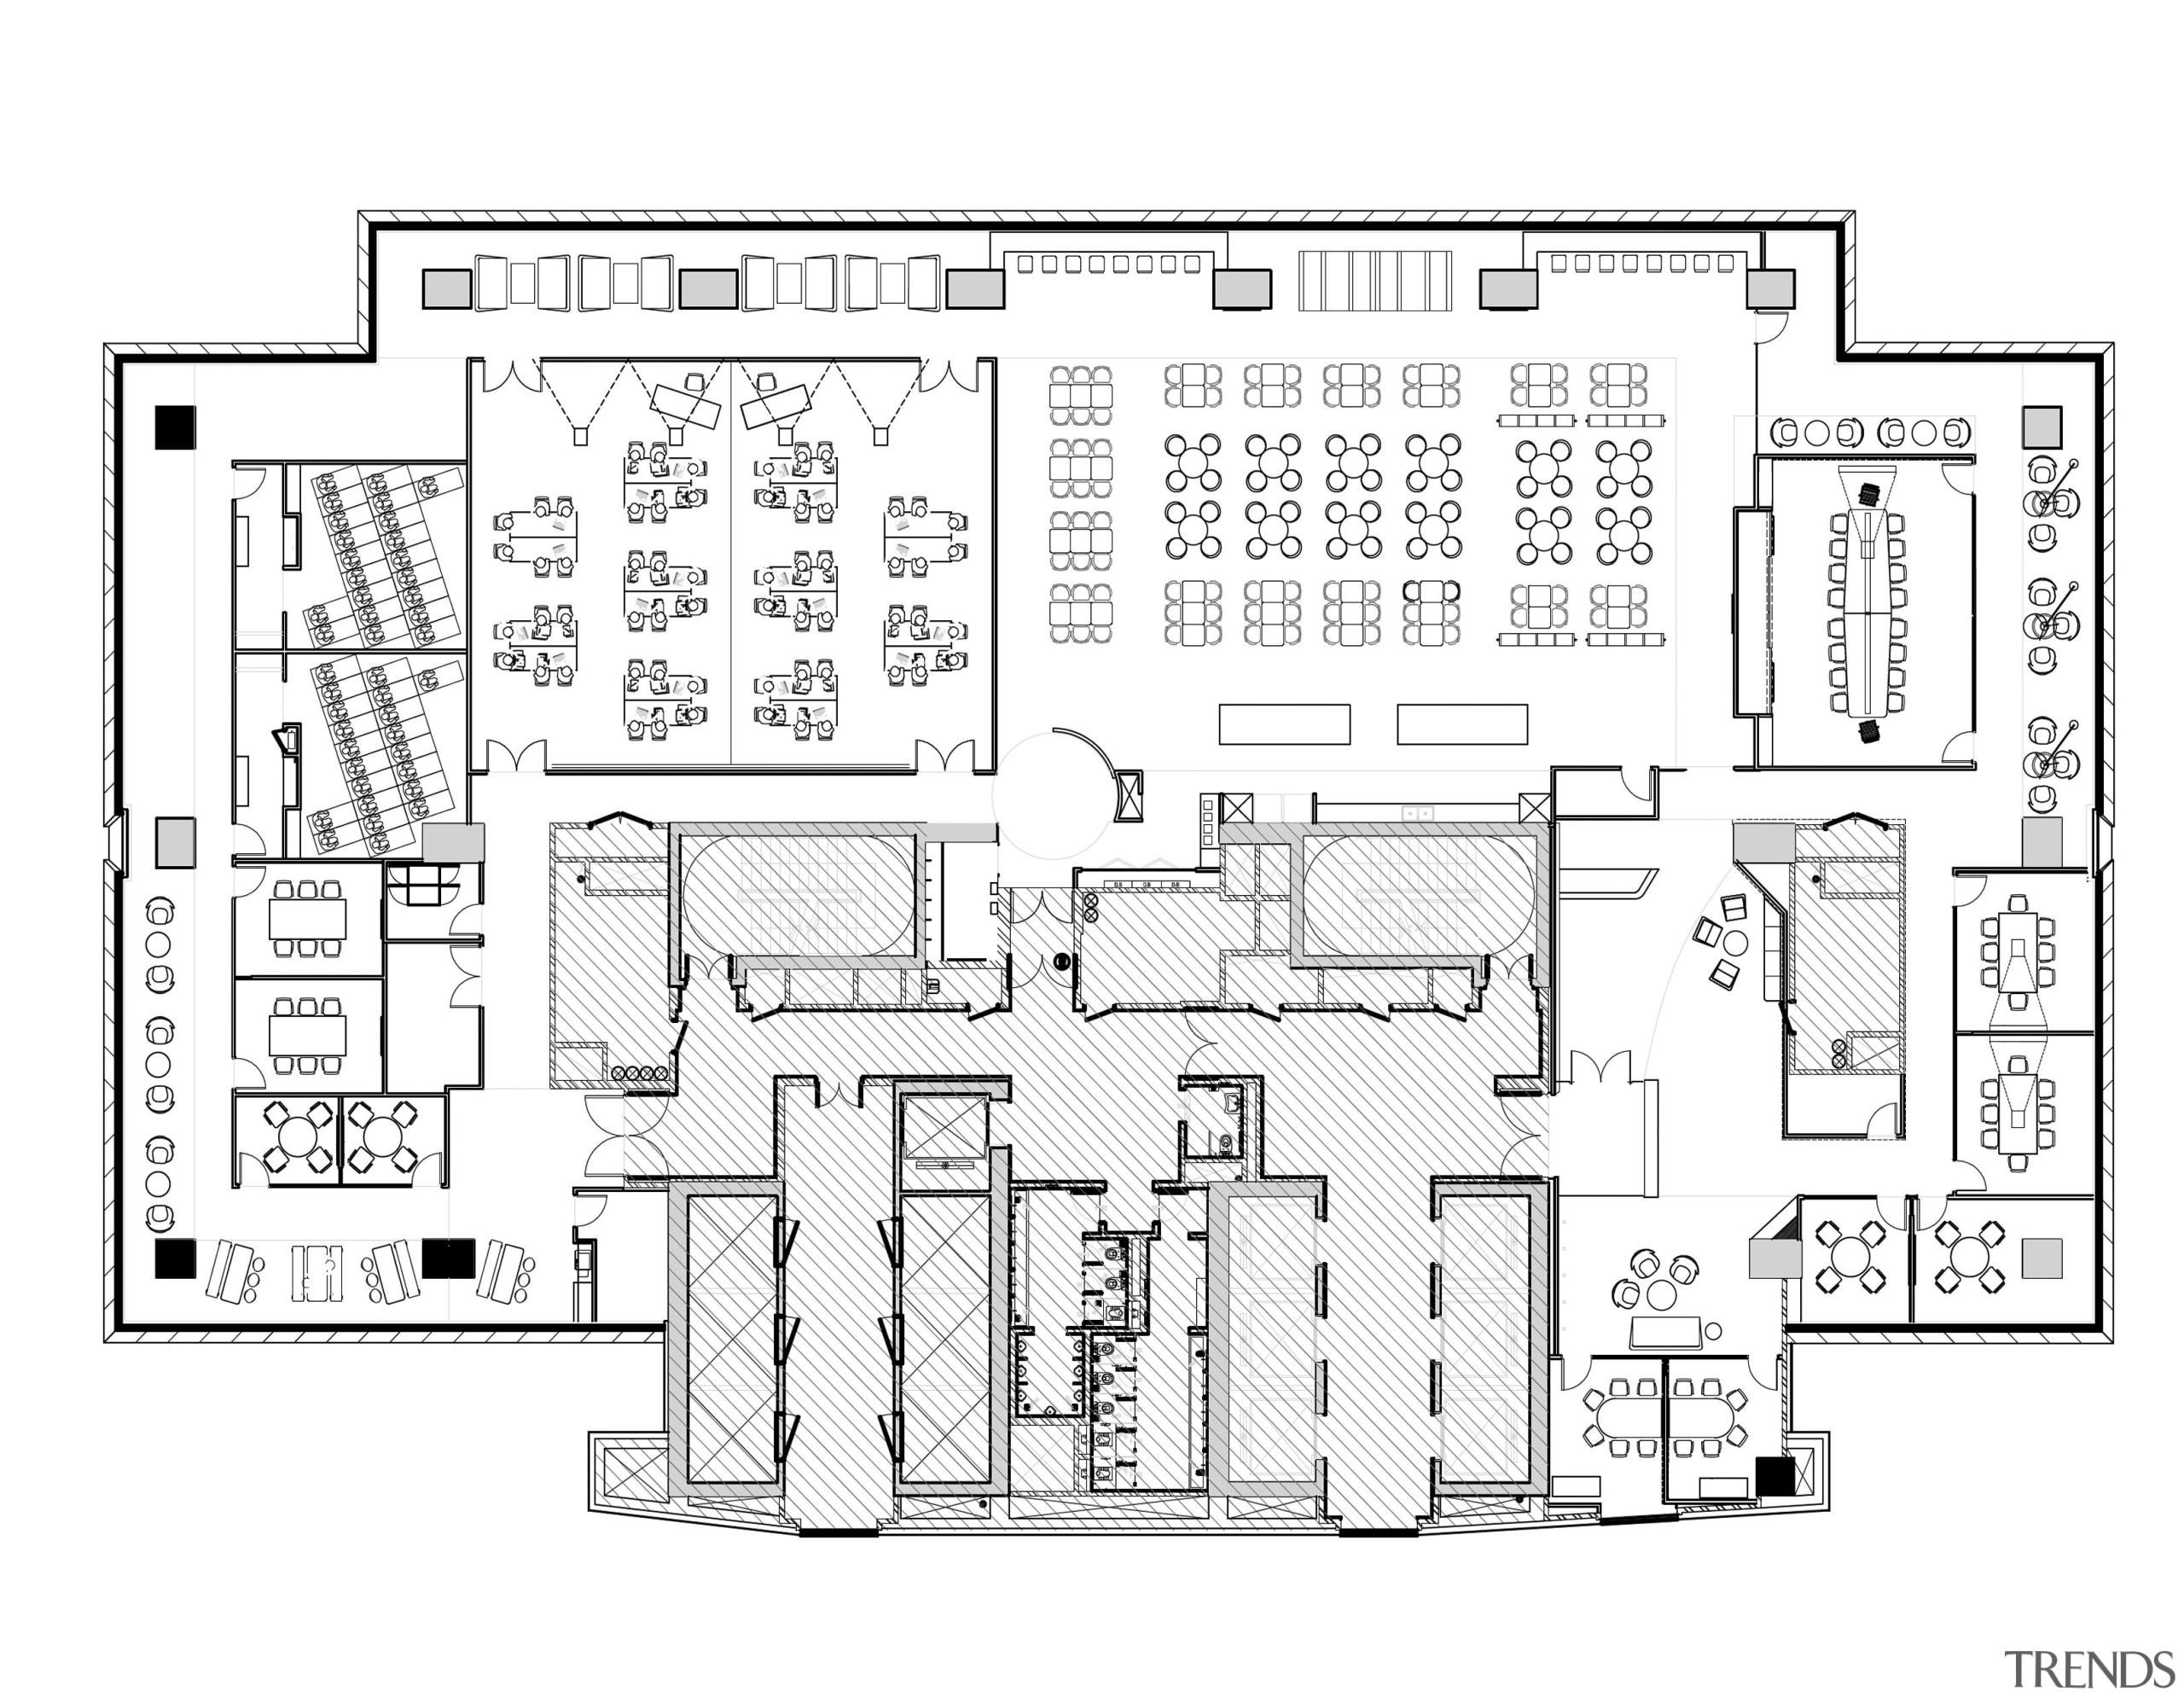 This partial plan of a back-office floor shows area, black and white, design, diagram, drawing, floor plan, line, line art, plan, product, product design, schematic, technical drawing, text, white